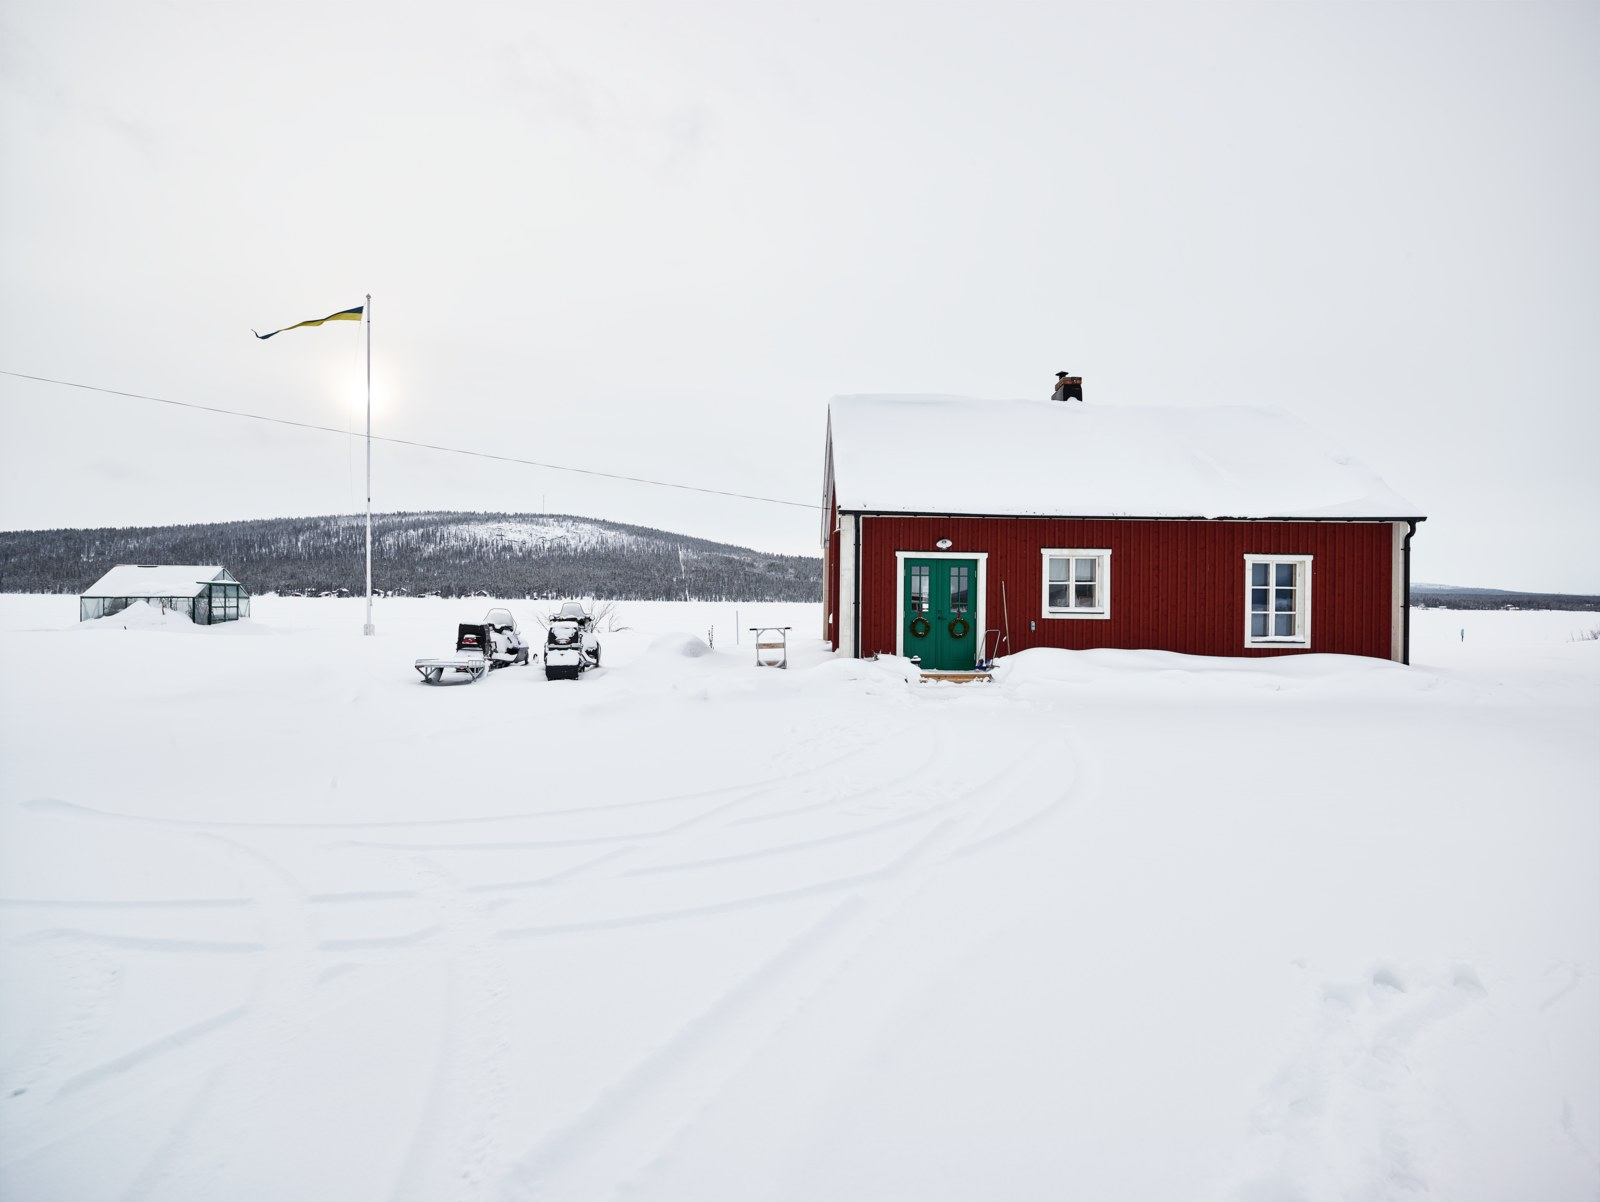 Winter in northern Sweden